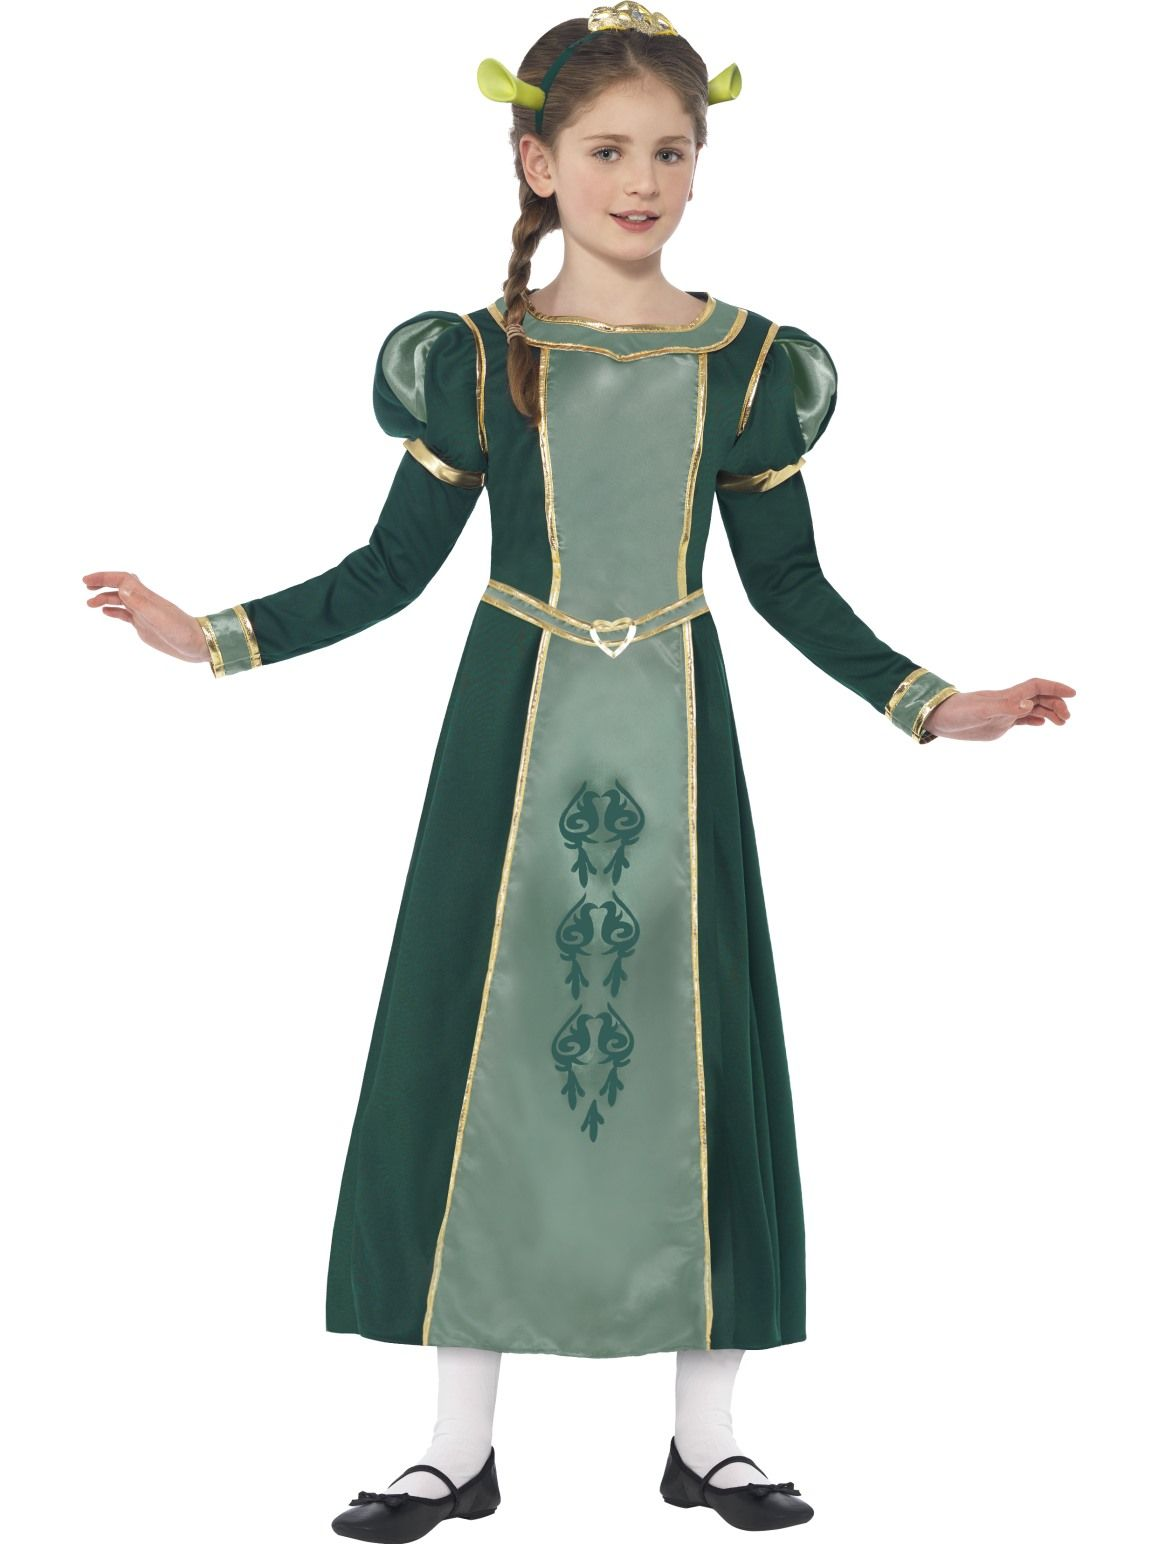 Princess Fiona Costume - Buy Online Only